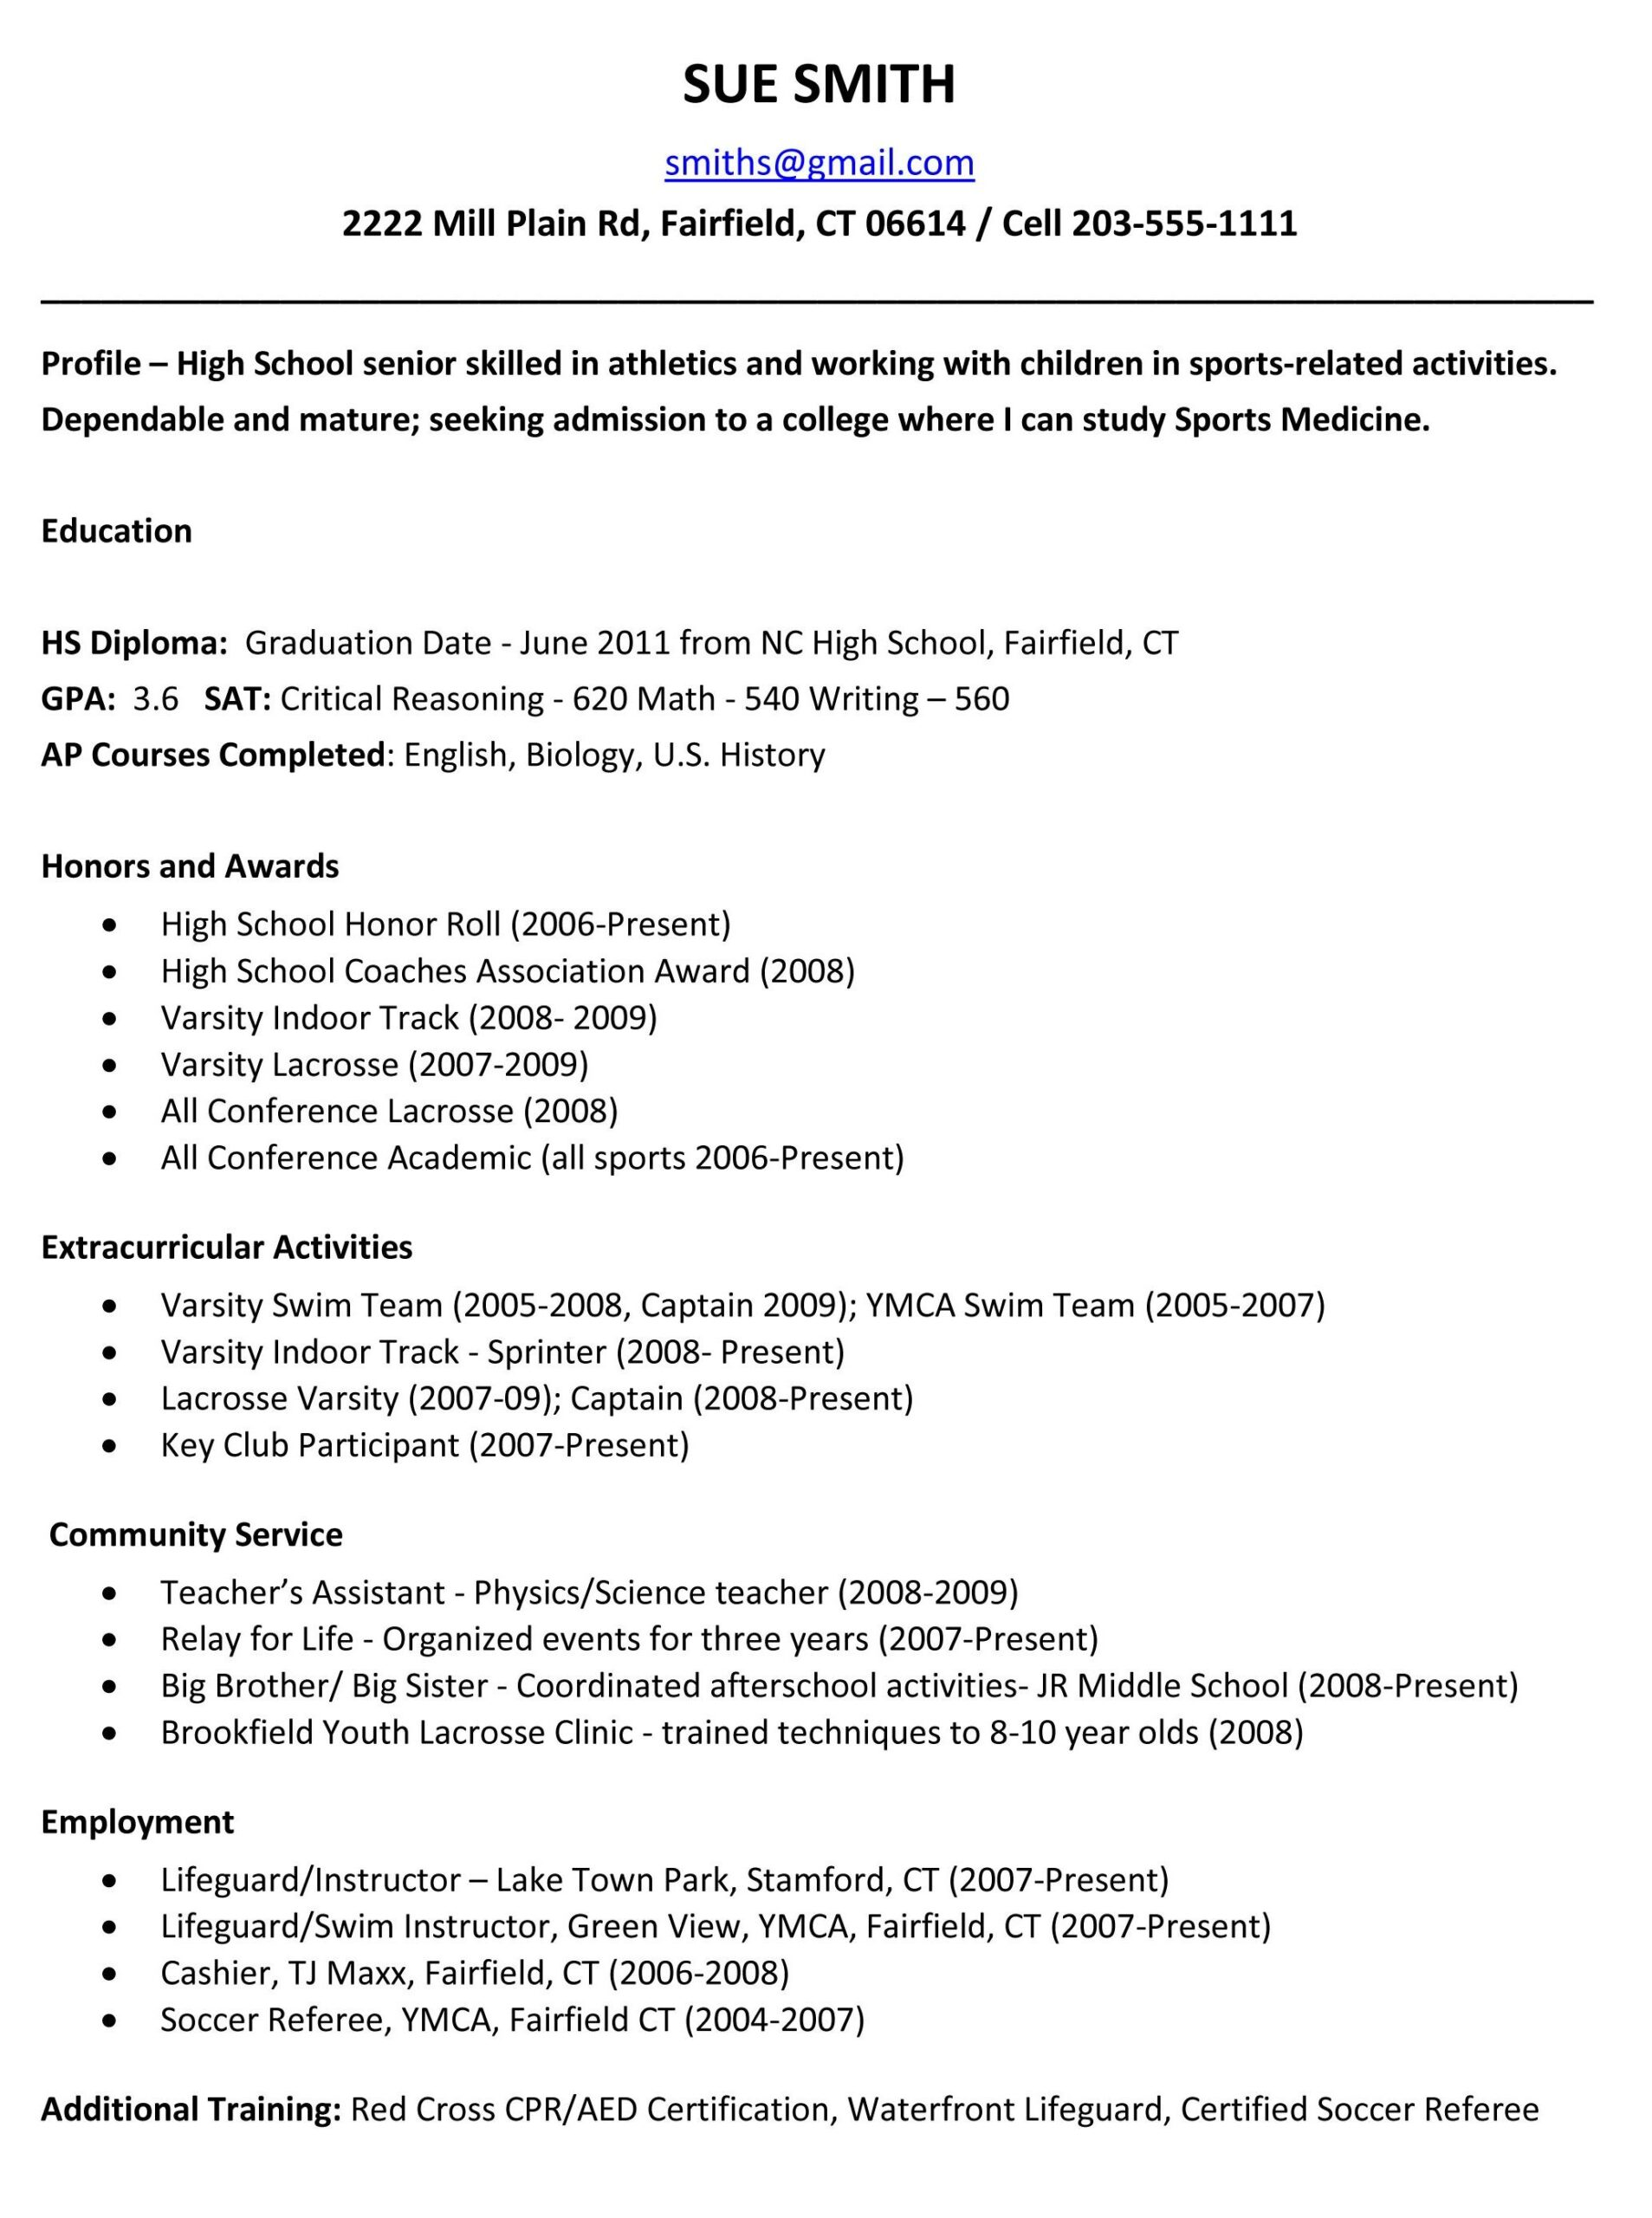 sample resumes high school resume template college application for staffing recruiter Resume High School Resume For College Application